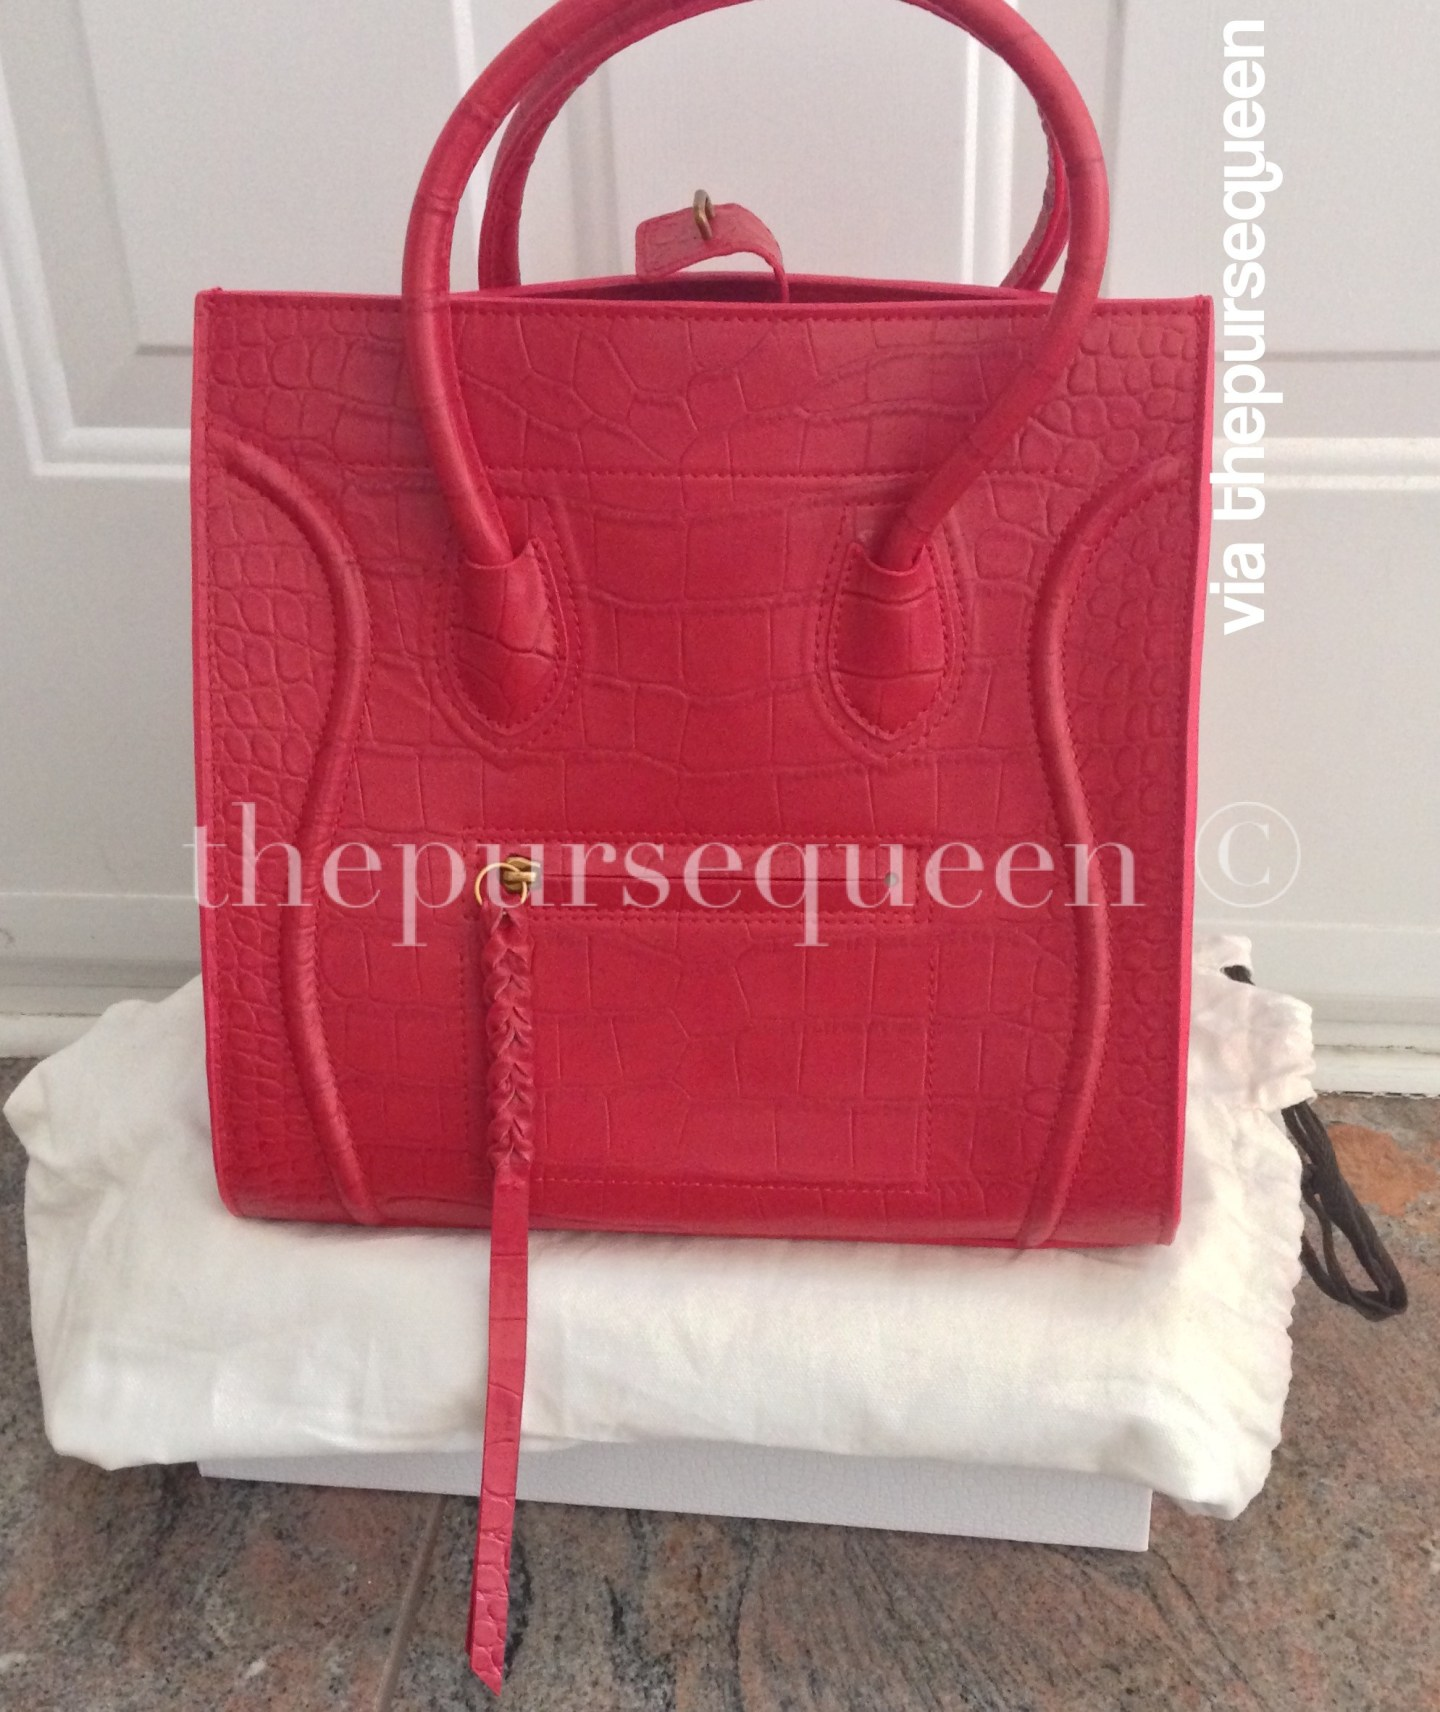 replica-celine-bag-review-phantom